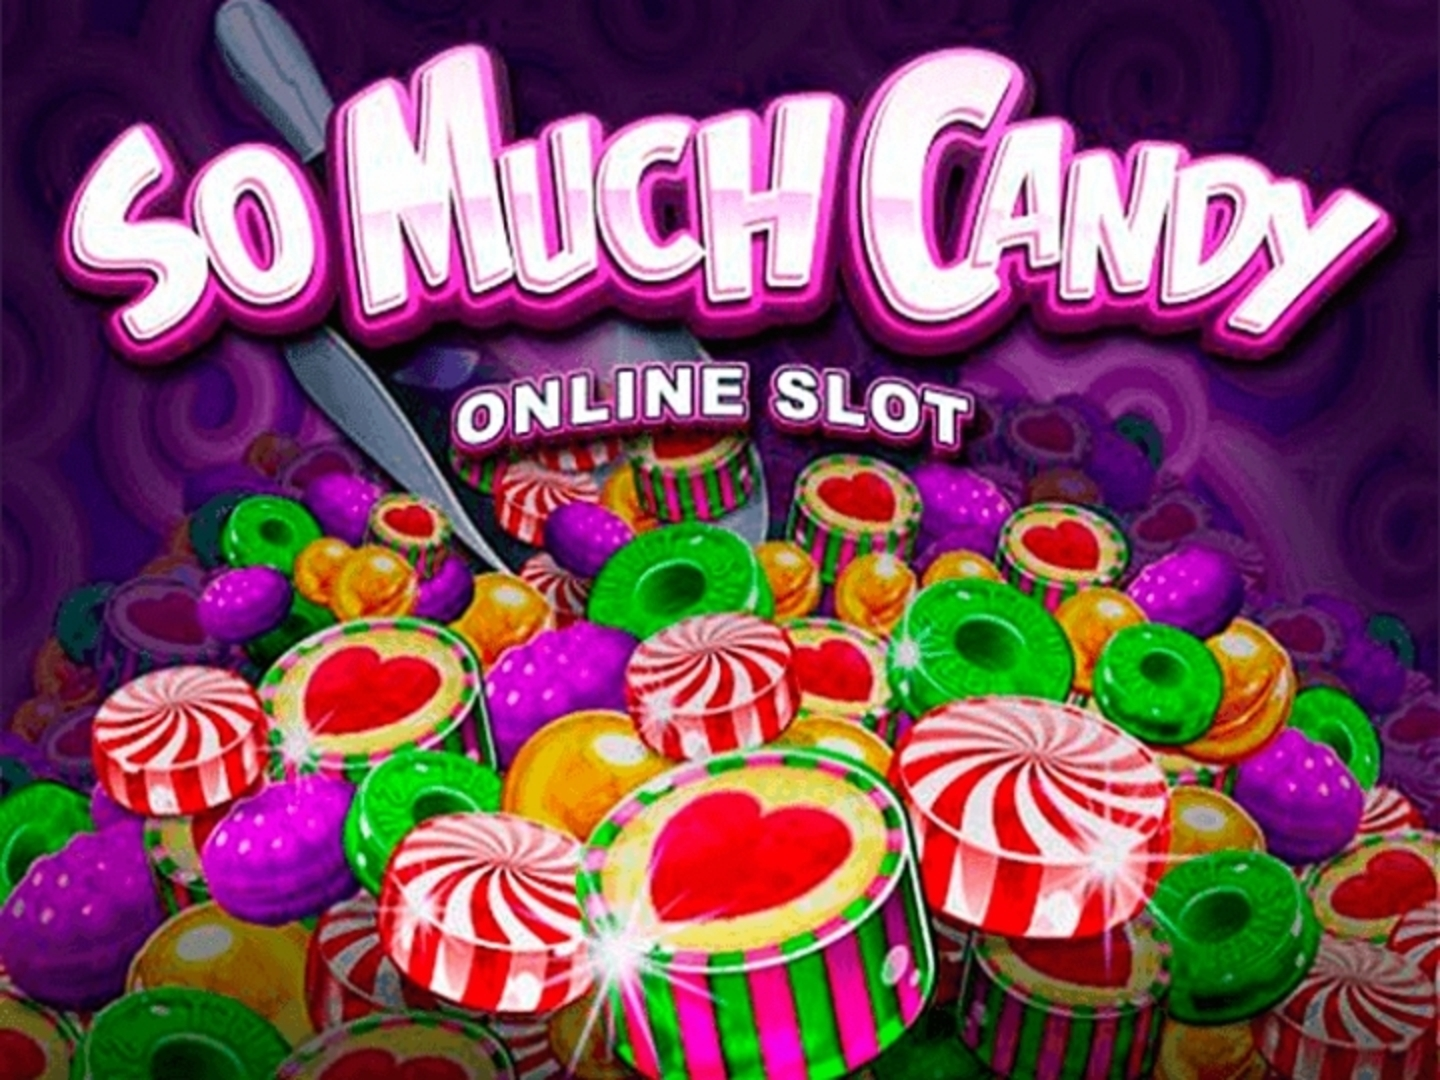 Se So Much Candy Online Slot Demo Game, Microgaming